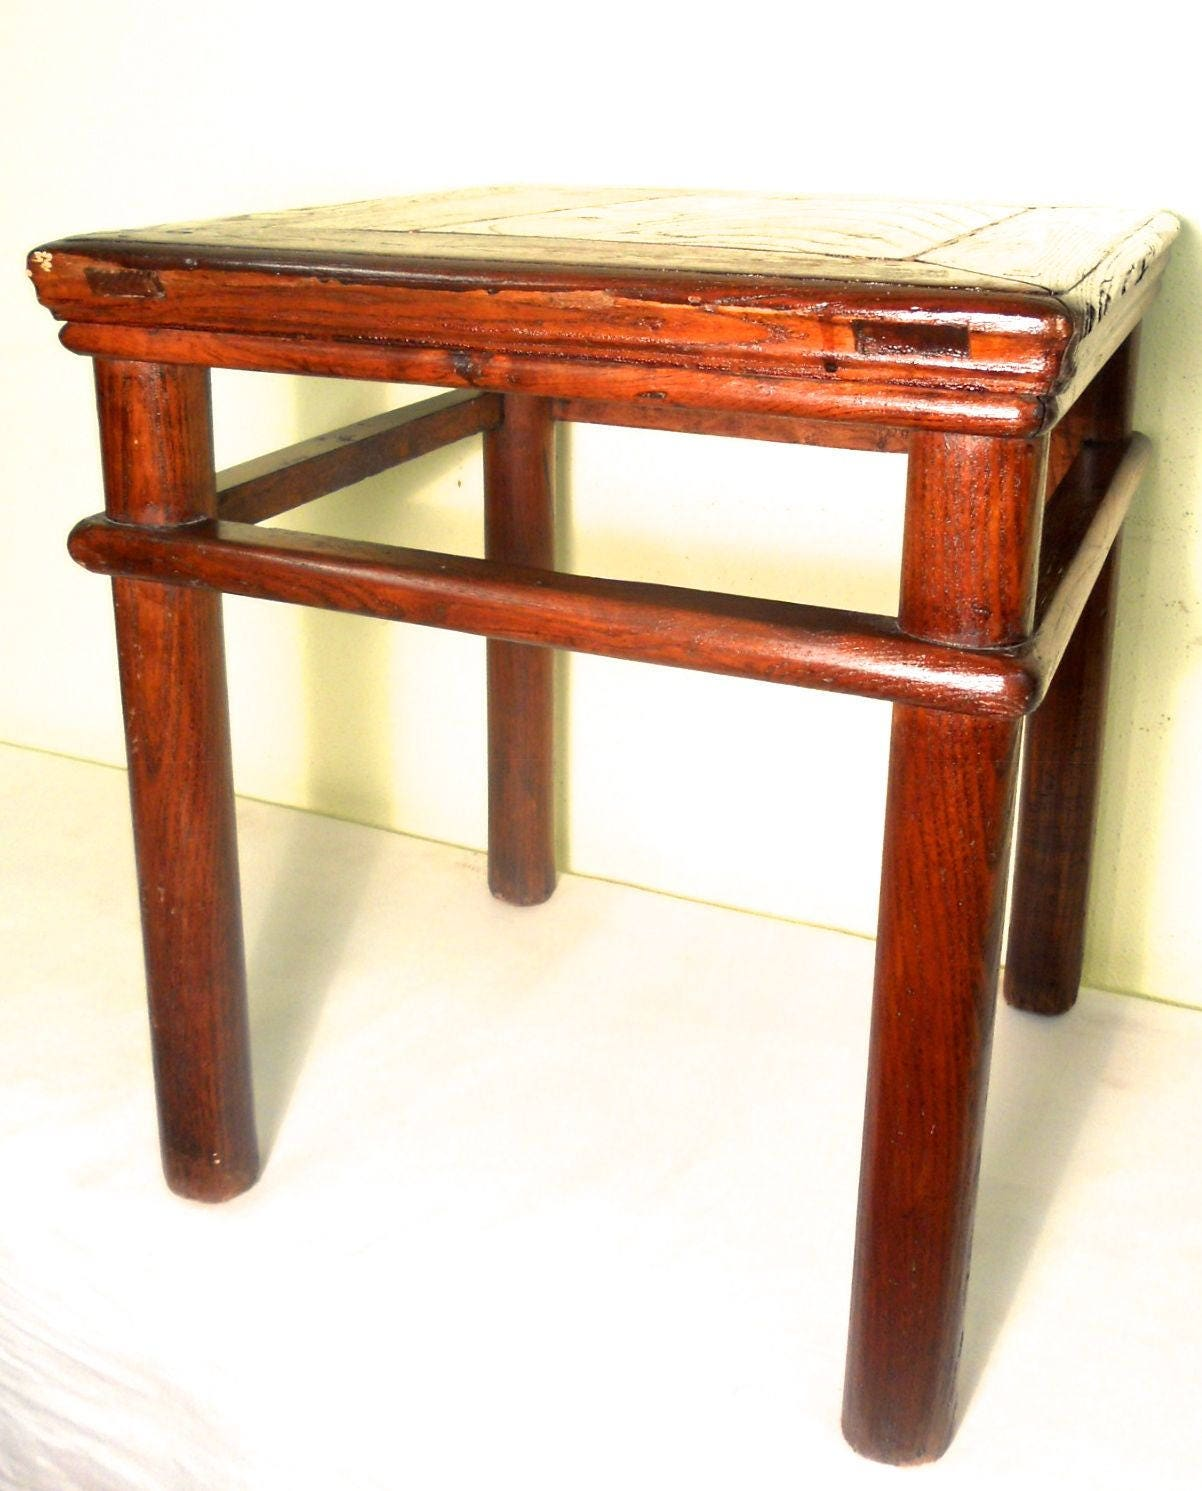 Antique Ming Meditation Bench 5764/End Table Circa